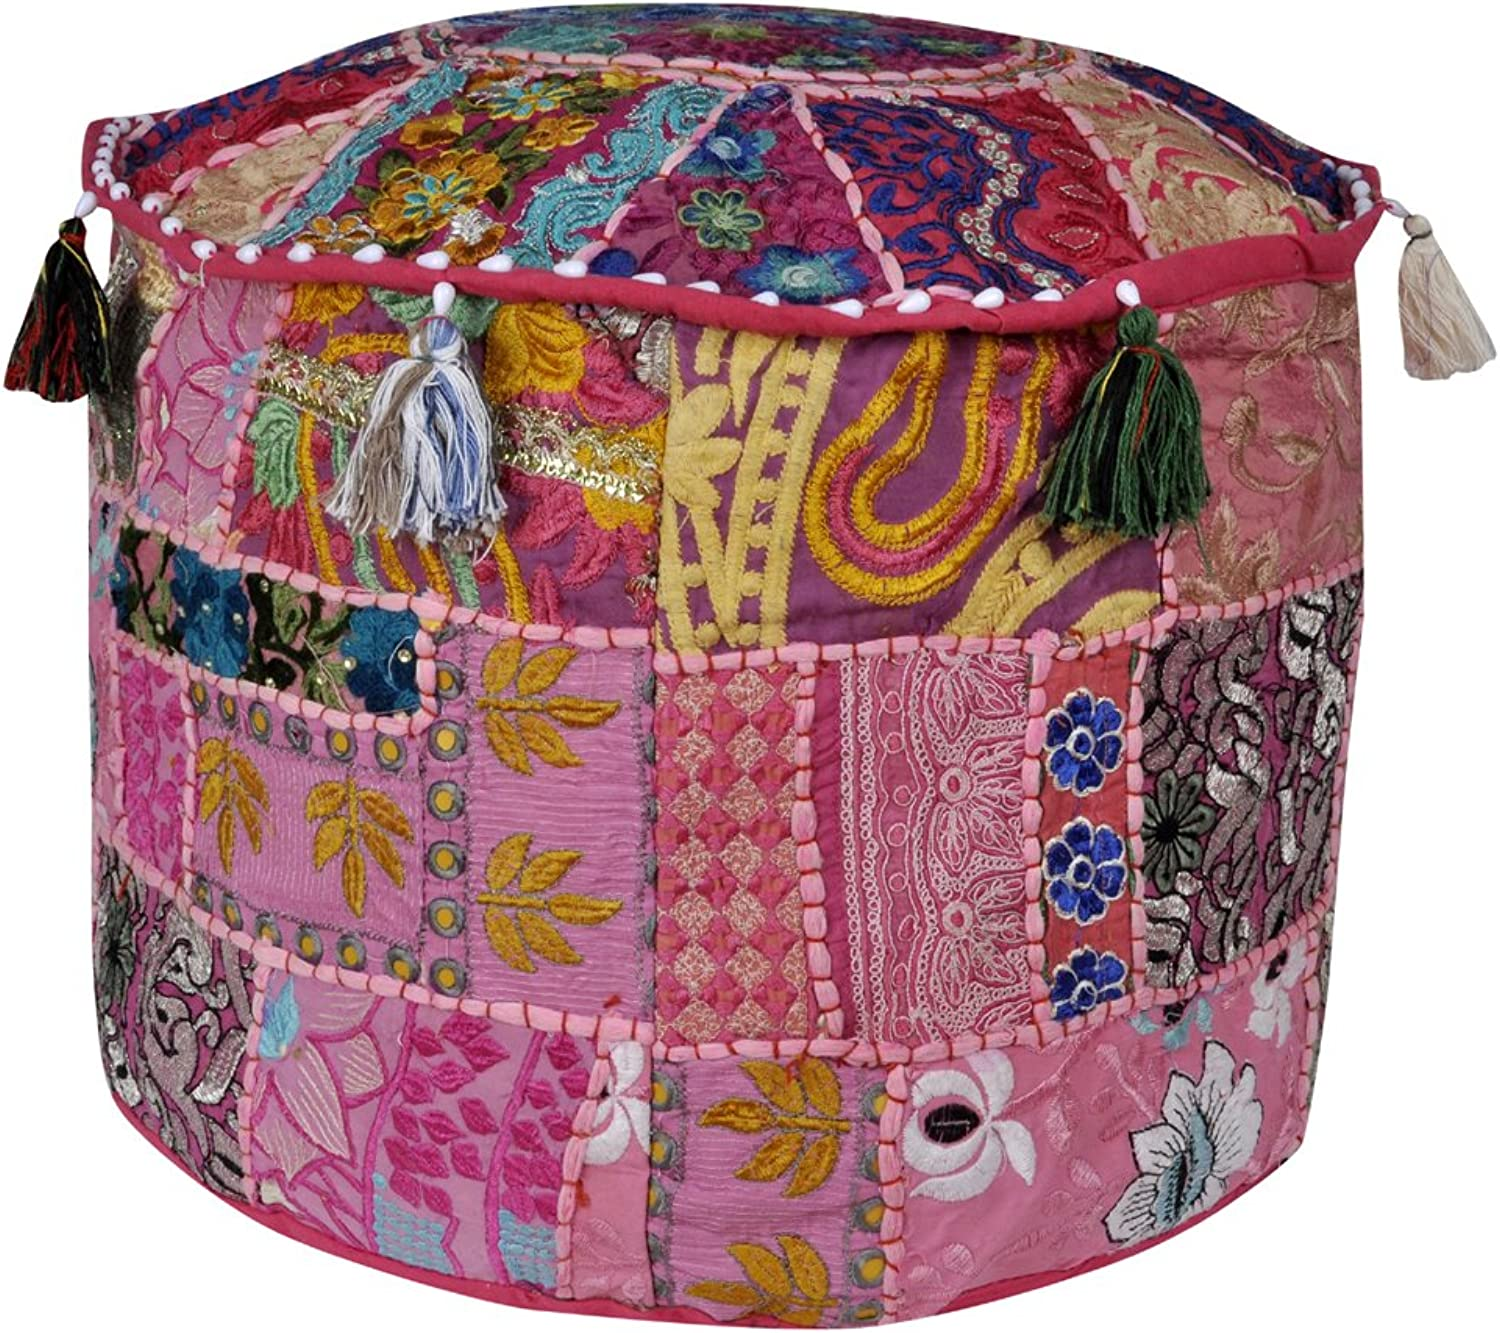 Indian Embroidered Deisgn Round Patchwork Floor Cushion Cover 17 X 17 X 12 In...